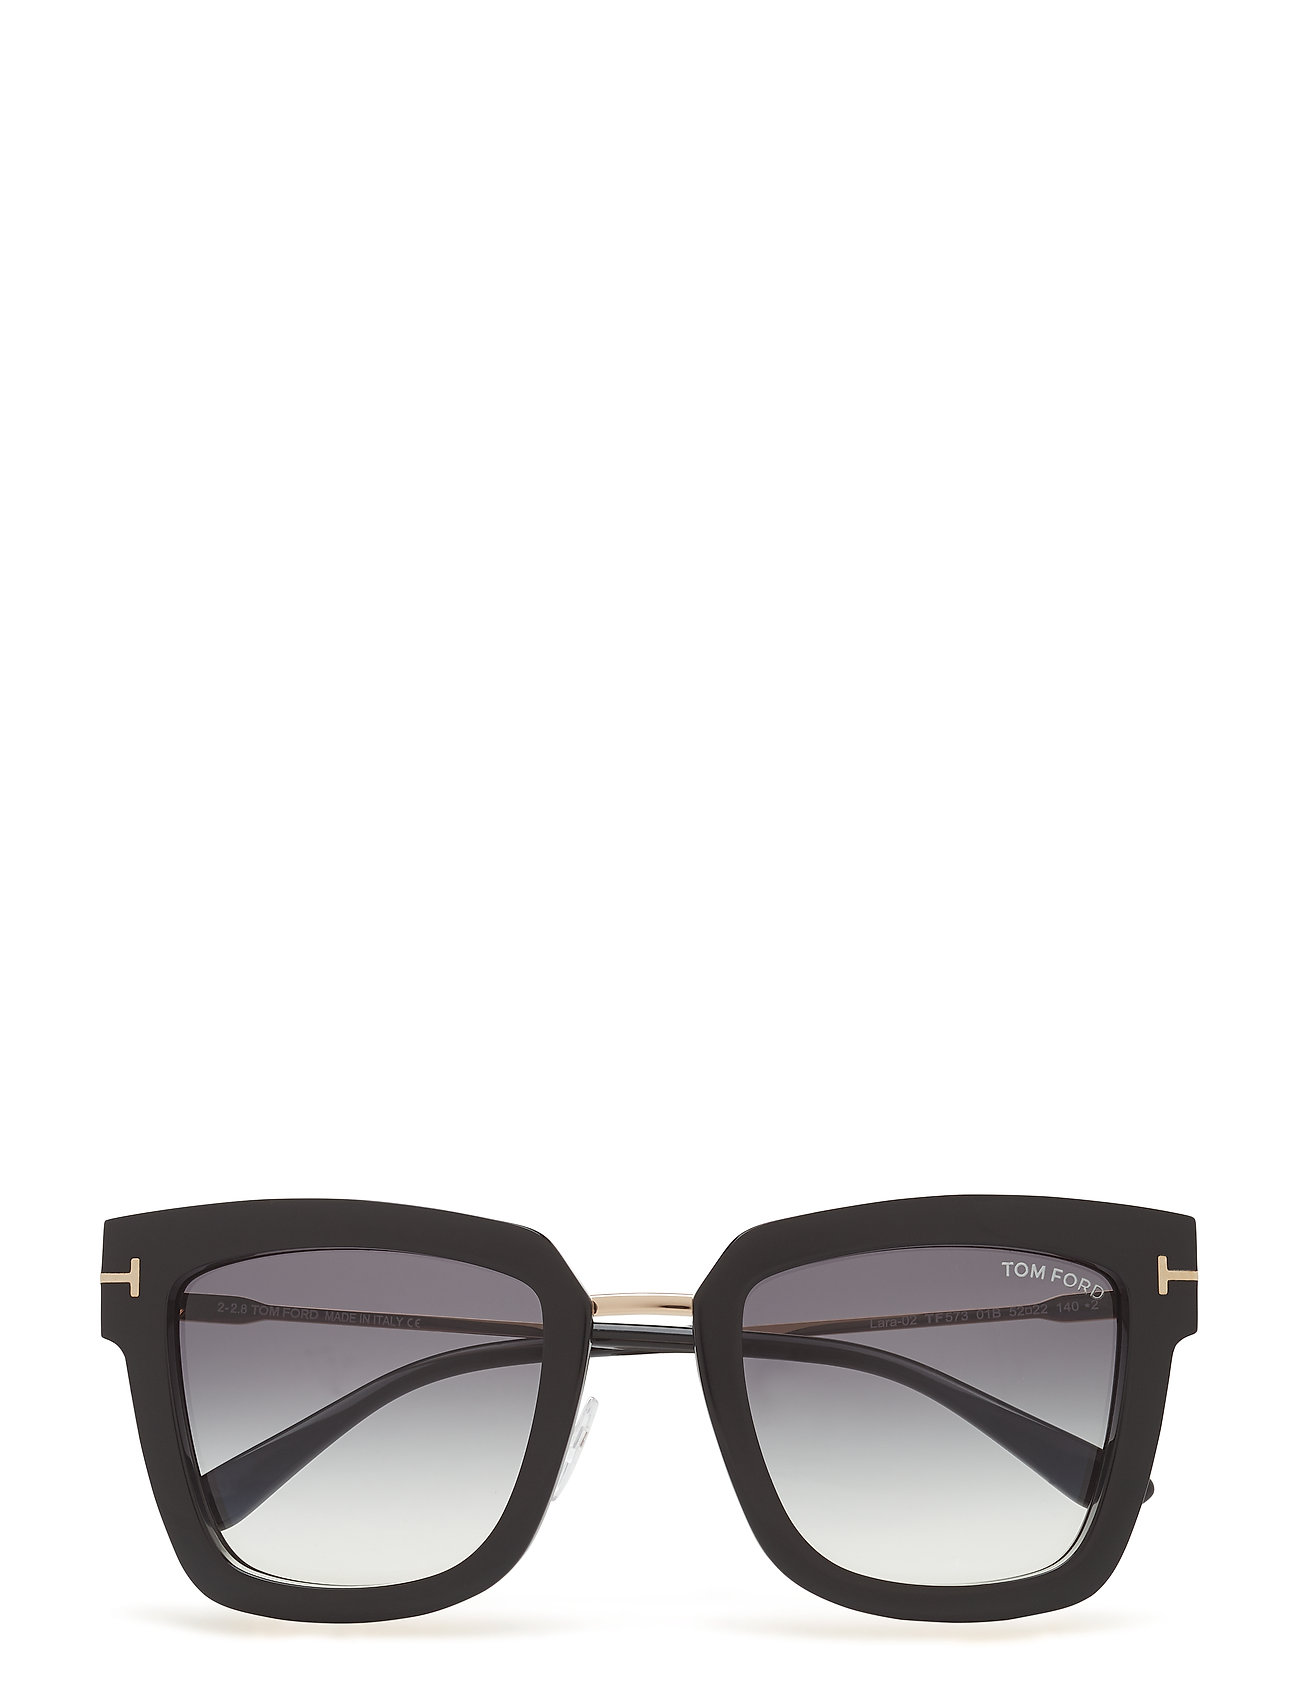 2ede86676b6b Tom Ford Lara-02 wayfarer solbriller fra Tom Ford Sunglasses til ...